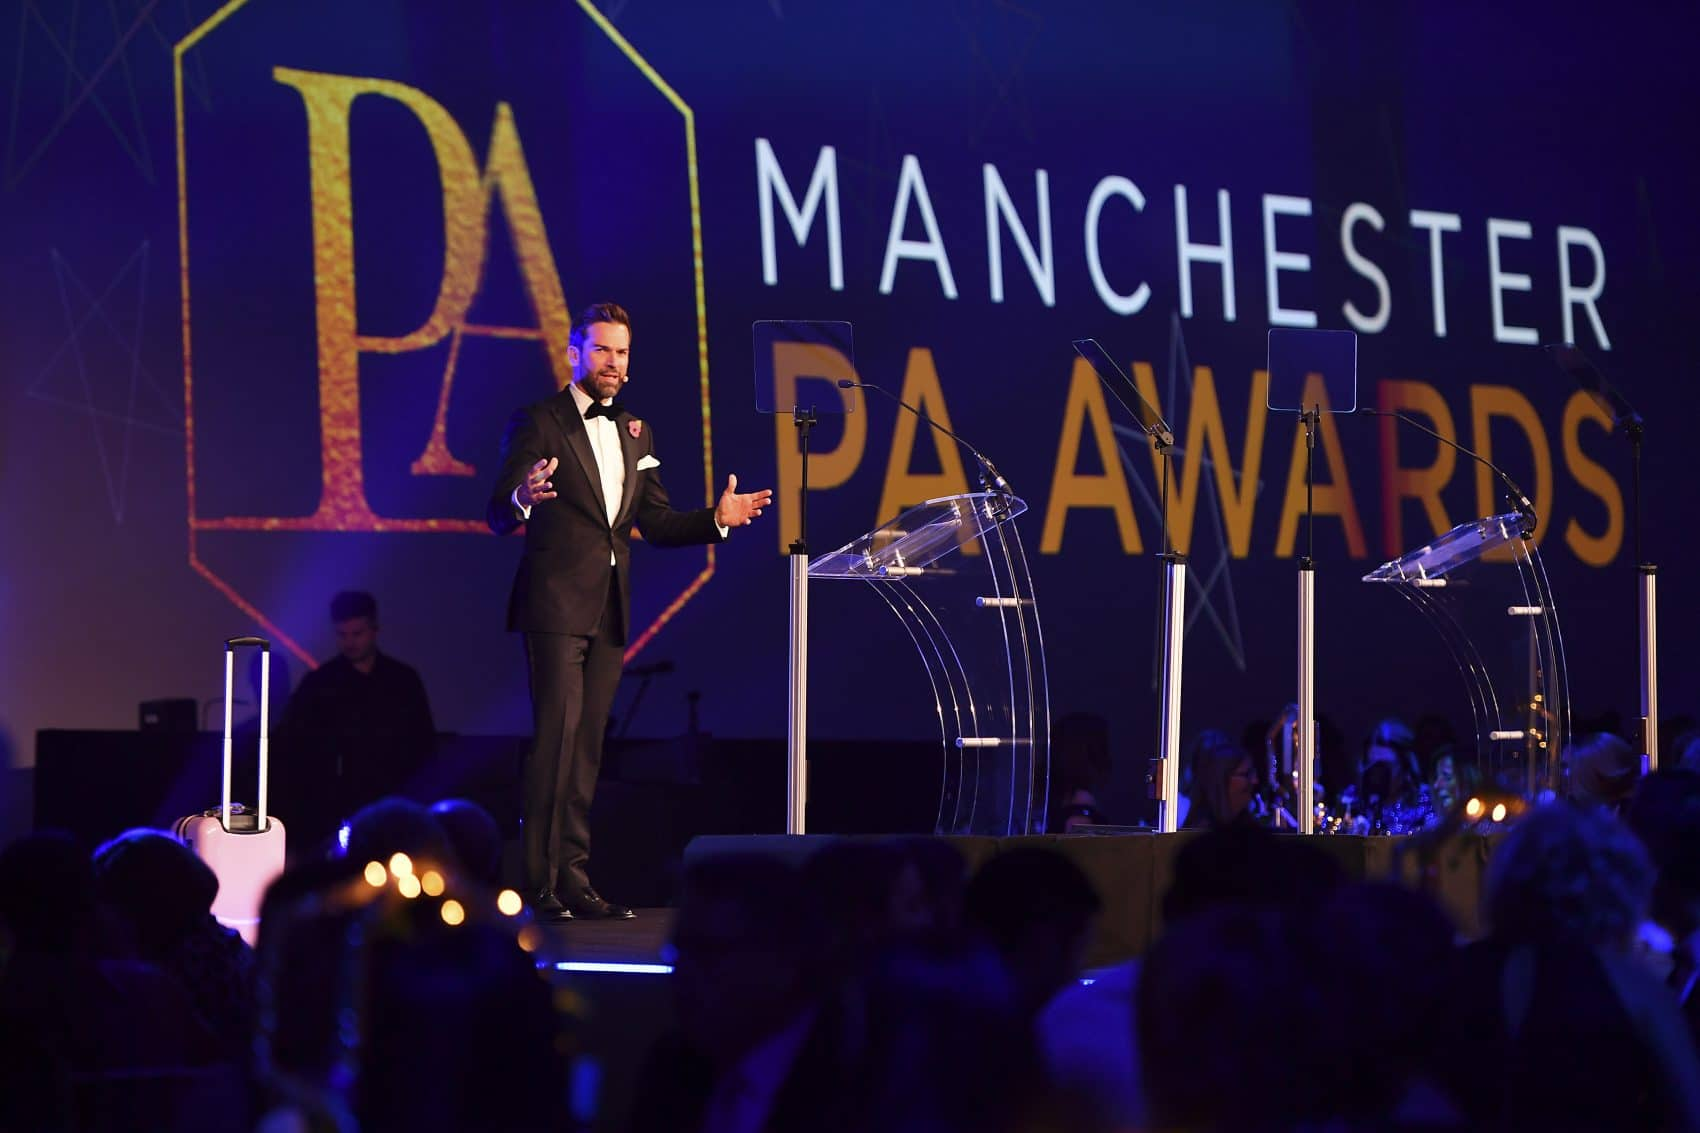 Manchester PA Network's PA Awards Ceremony 2018